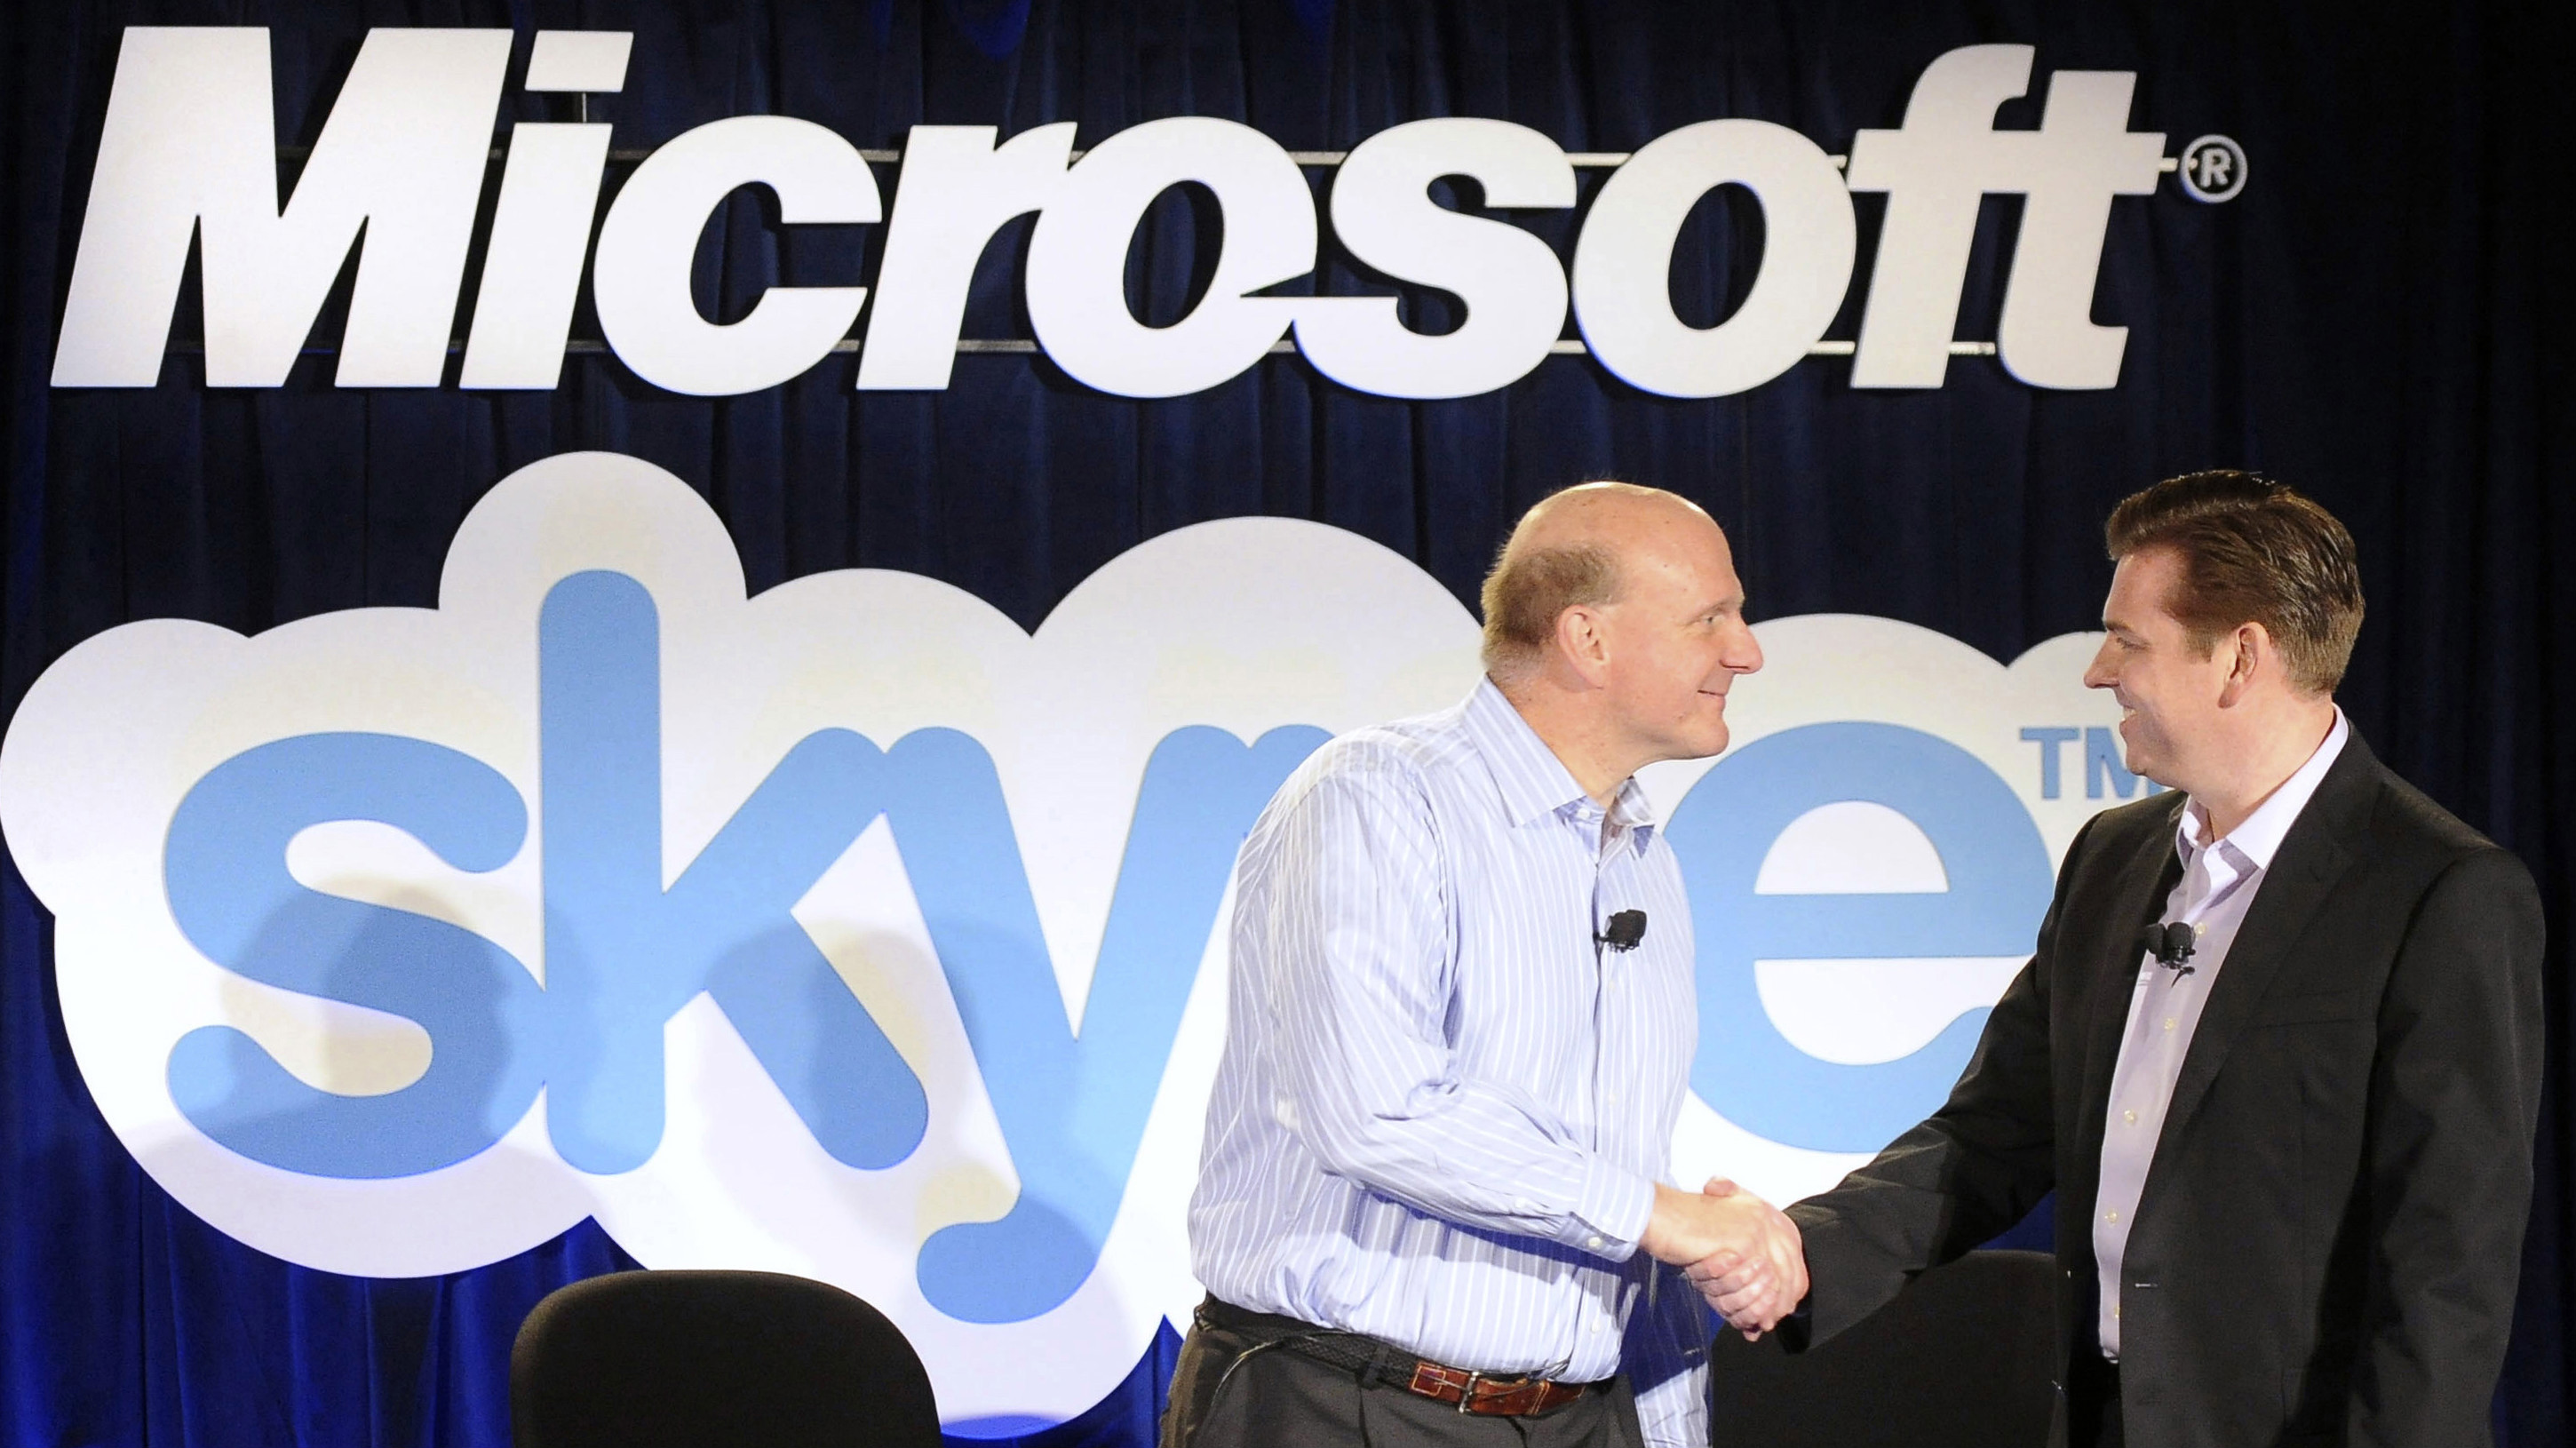 Microsoft Chief Executive Officer (CEO) Steve Ballmer (L) and Skype CEO Tony Bates shake hands at their joint news conference in San Francisco, May 10, 2011. Microsoft and Skype announced Tuesday that they have entered a definitive agreement under which Microsoft will acquire Skype for $8.5 billion from the investor group led by Silver Lake. REUTERS/Susana Bates